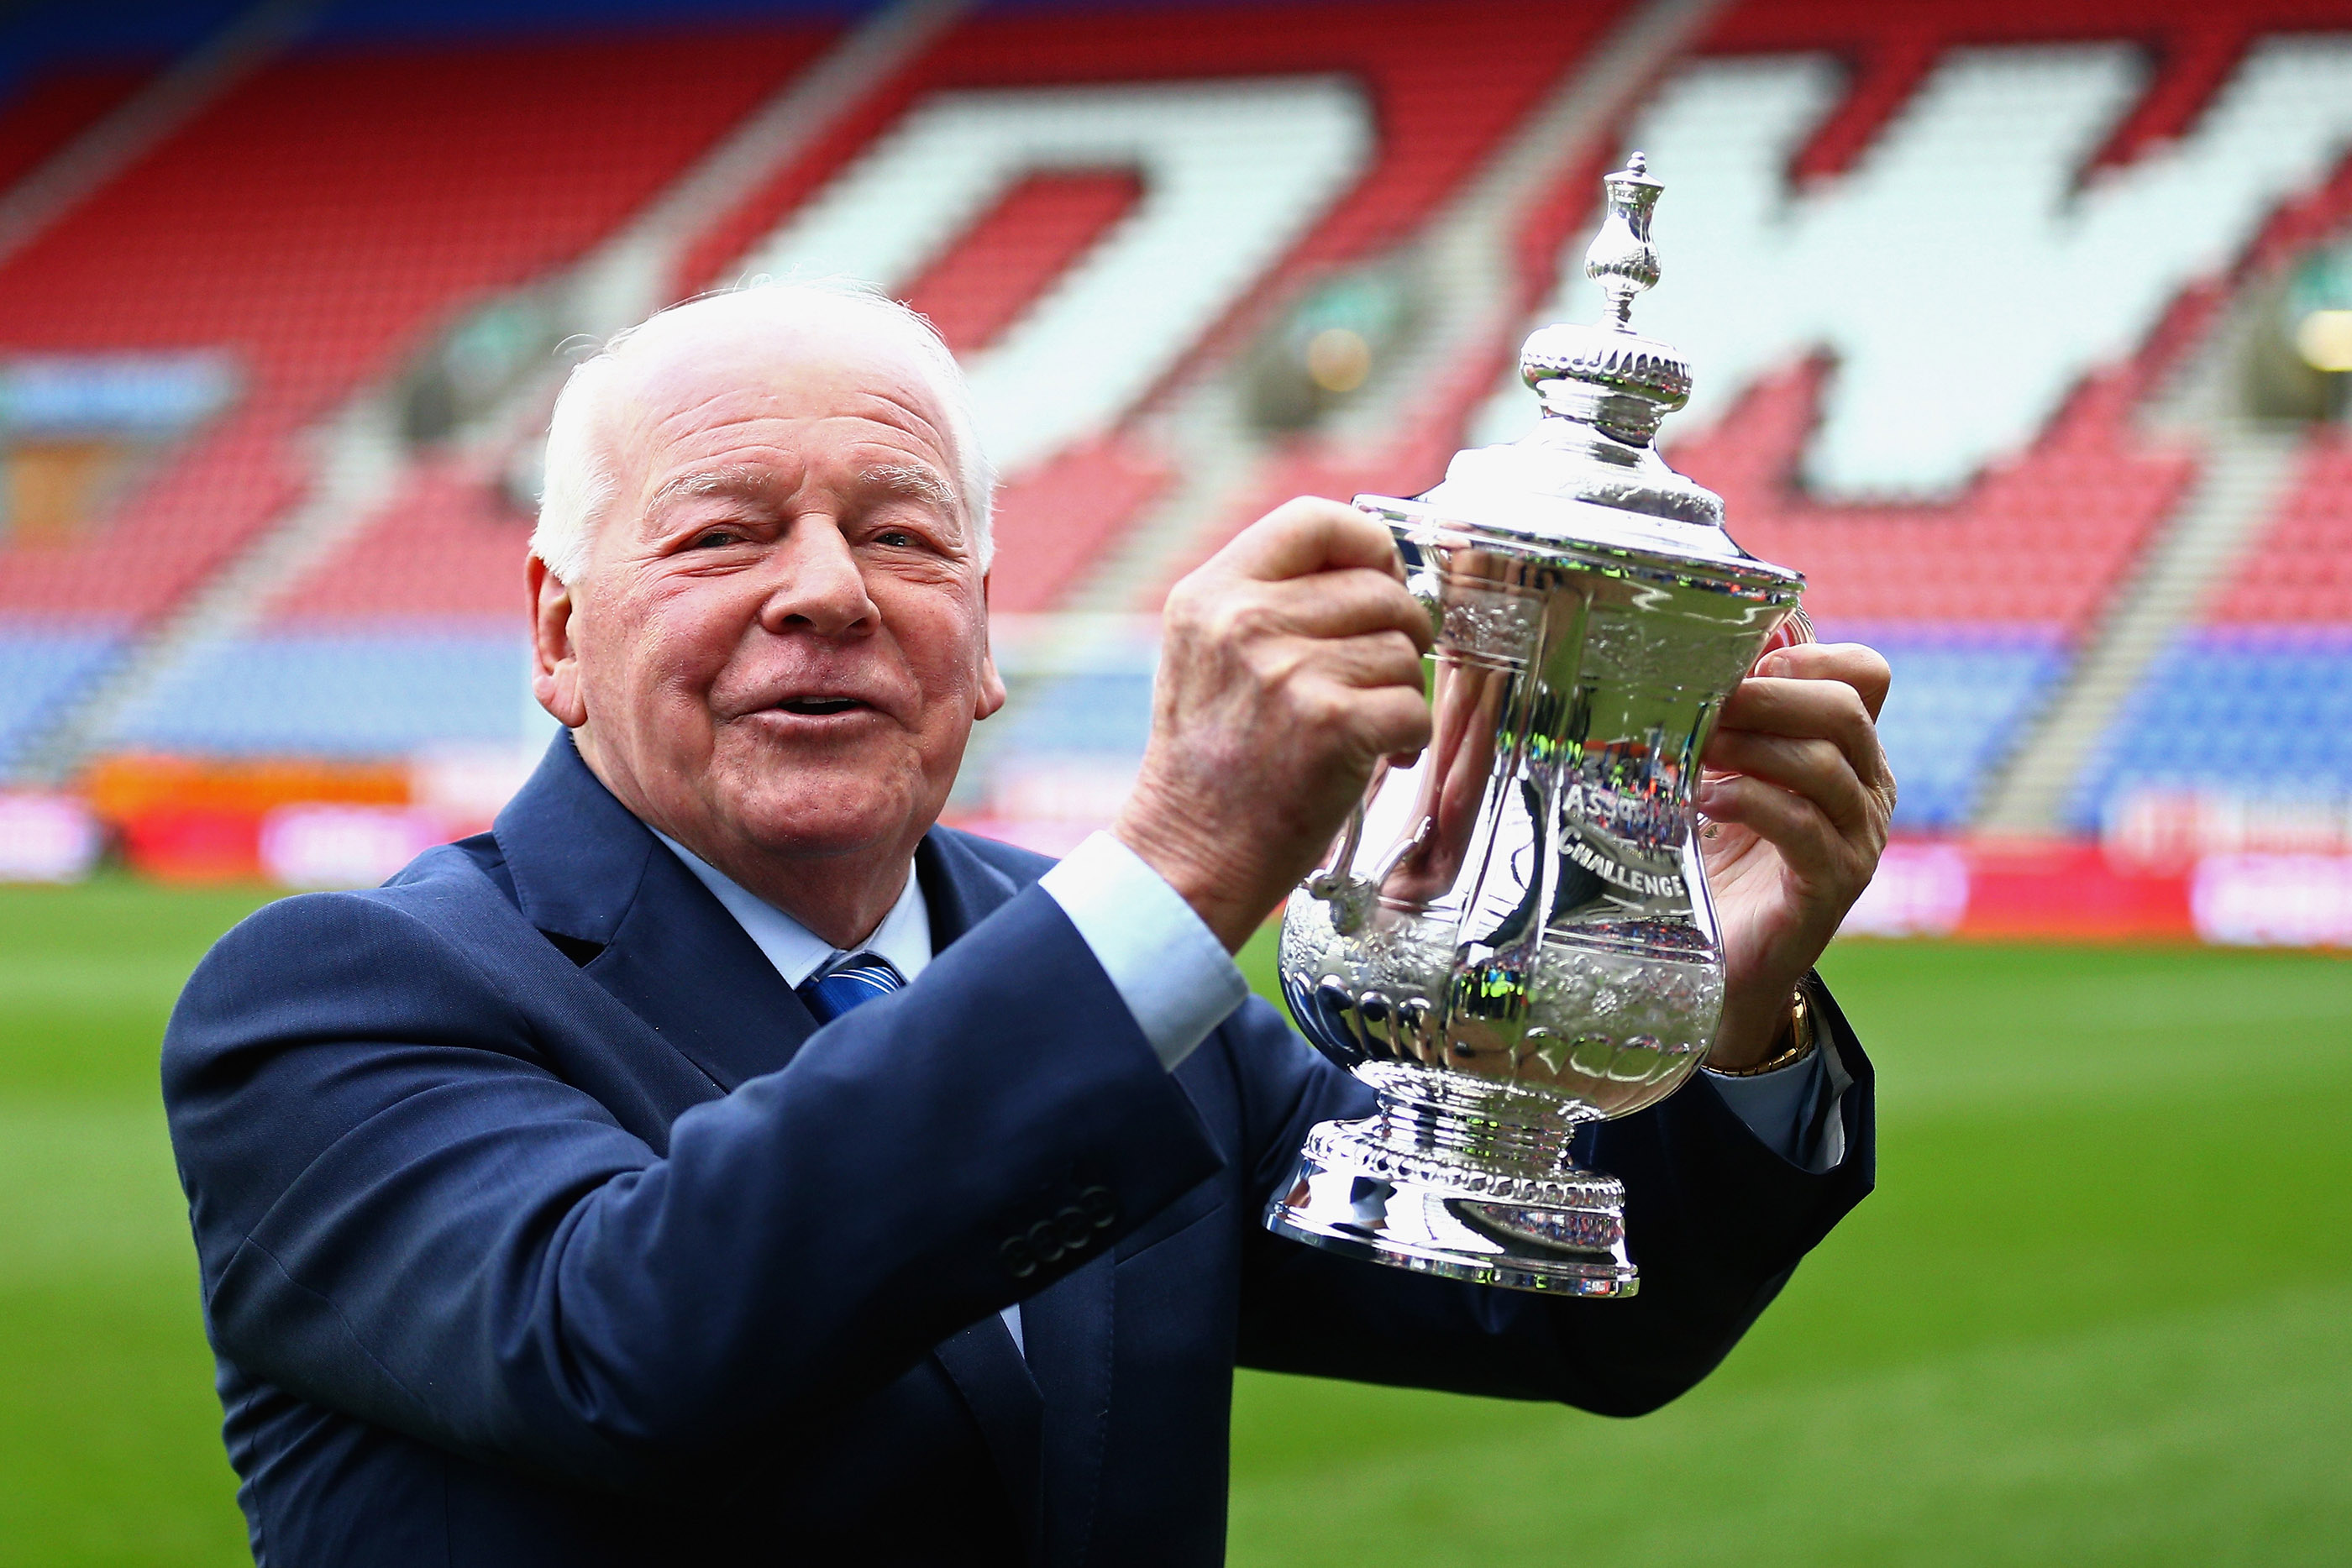 Wigan Athletic Chairman Dave Whelan holds the FA Cup prior to the Budweiser FA Cup fourth round match between Wigan Athletic and Crystal Palace at DW Stadium on January 25, 2014 in Wigan, England.